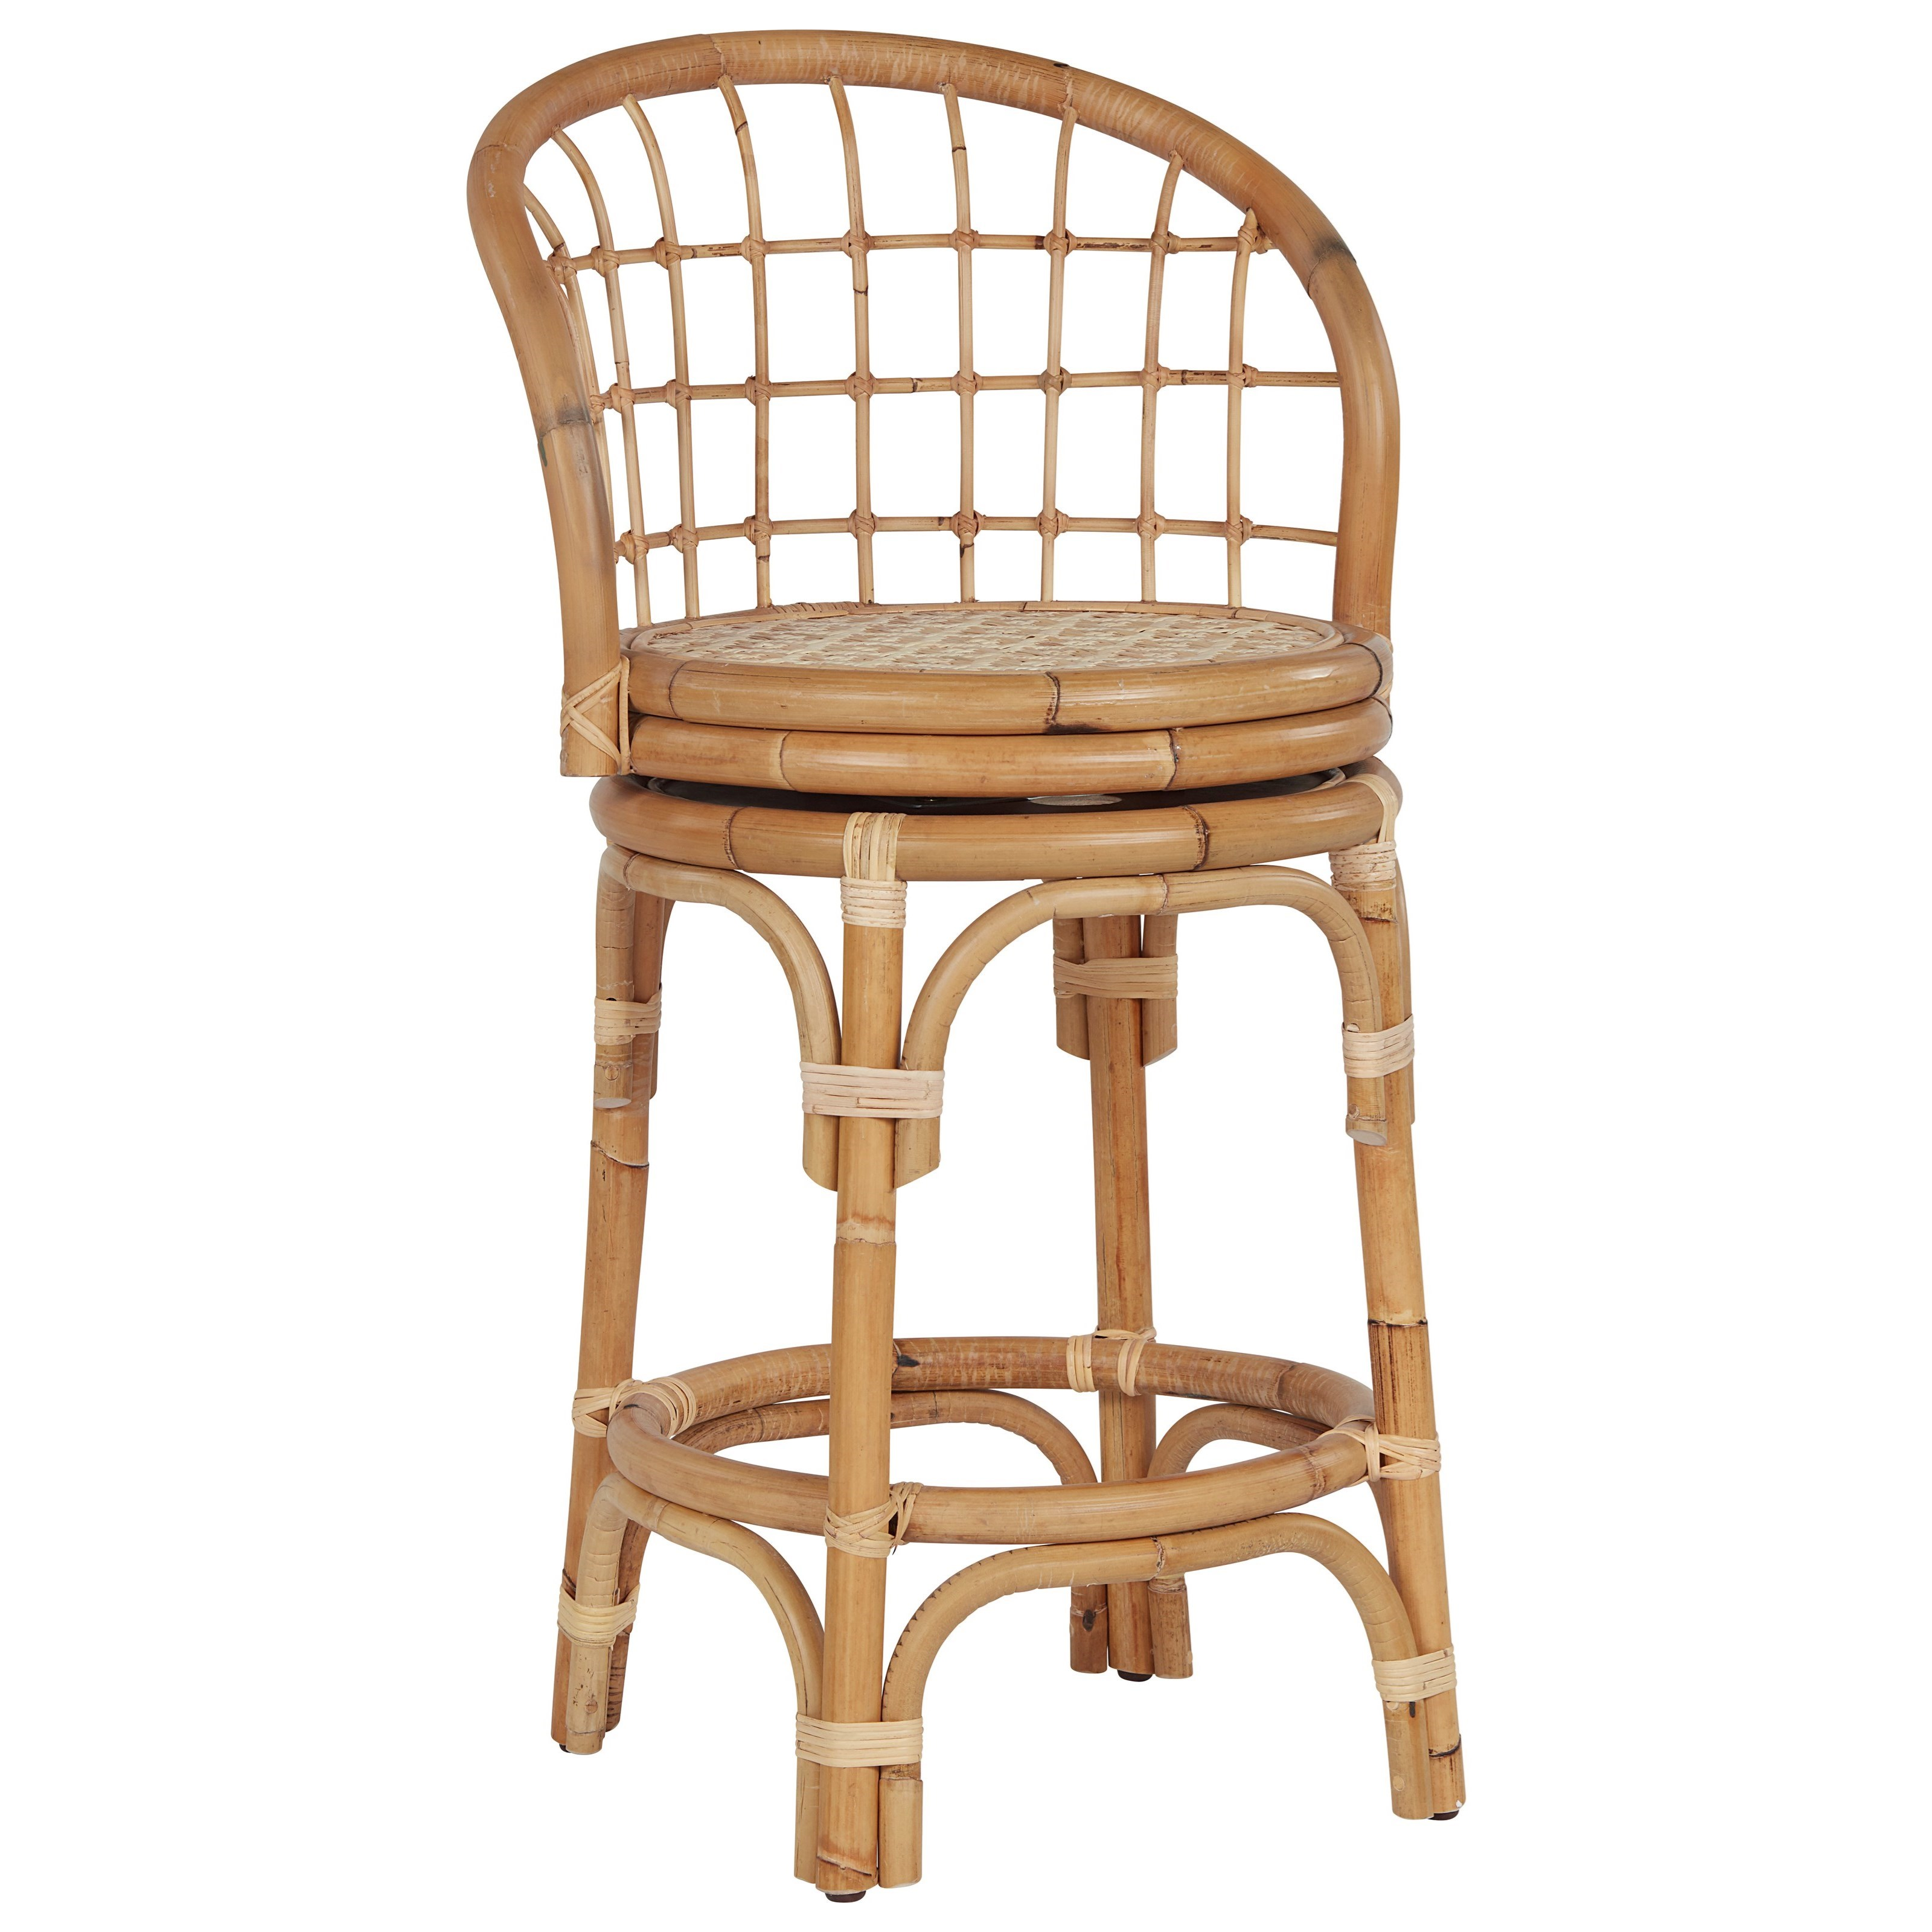 Coastal Living Home - Getaway Counter Height Stool by Universal at Baer's Furniture